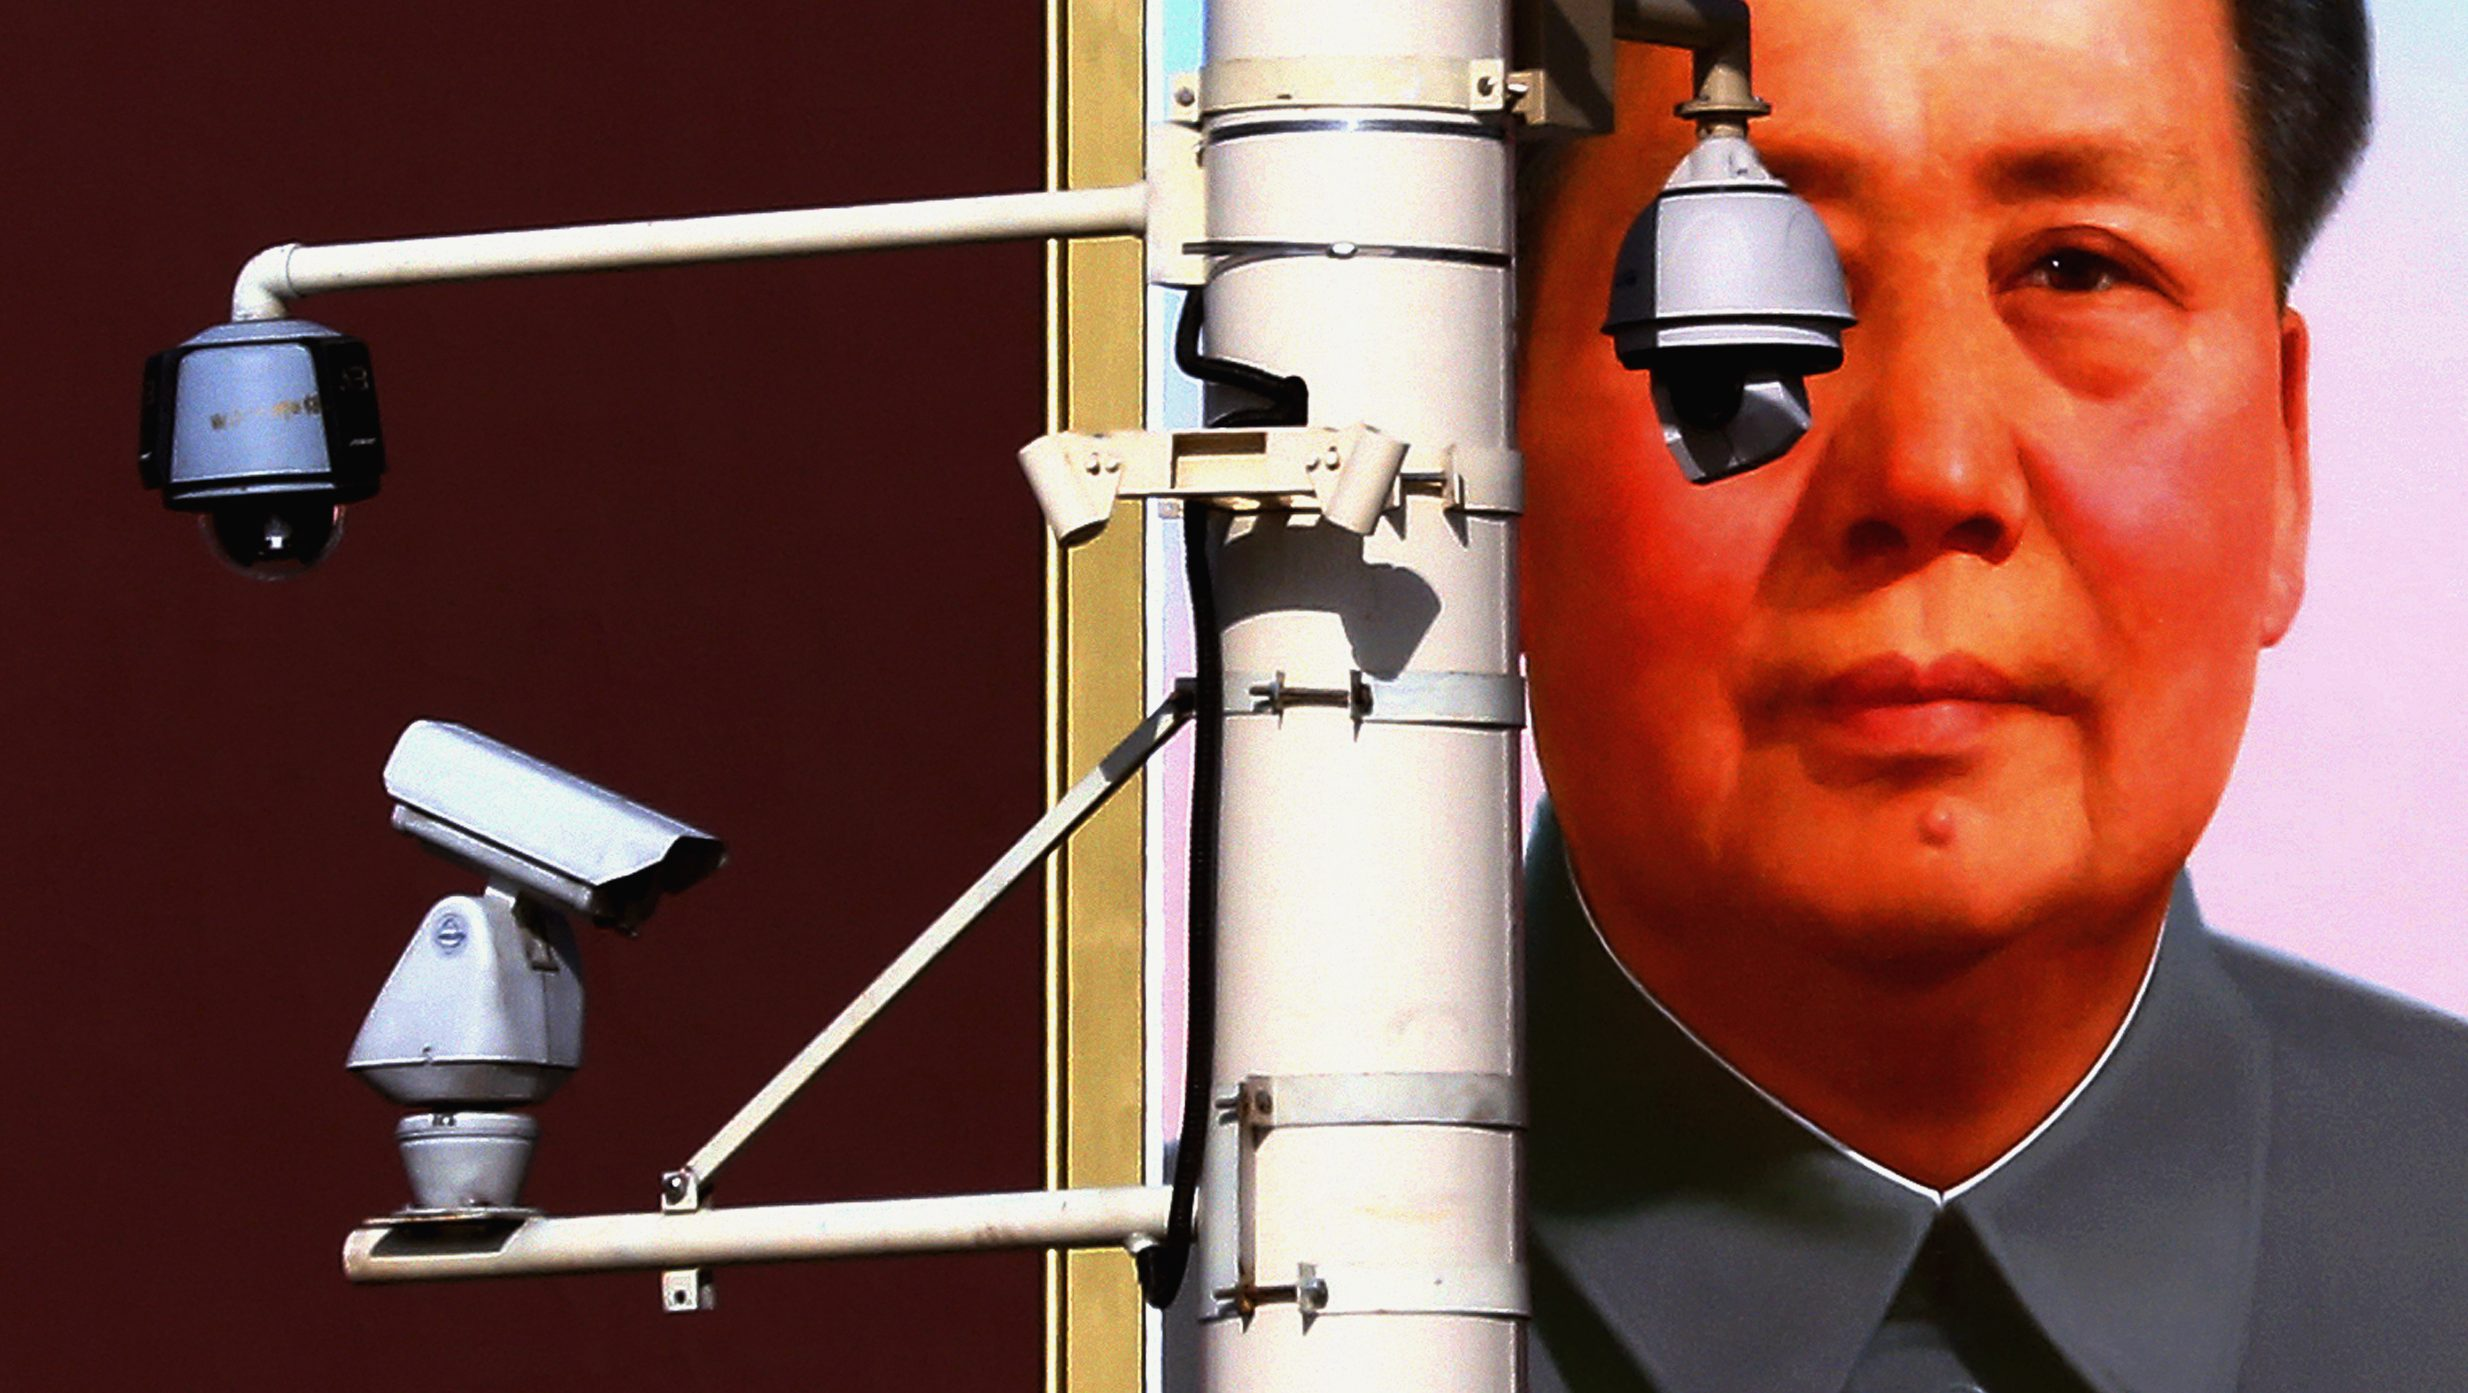 Security cameras are attached to a pole in front of the giant portrait of former Chinese Chairman Mao Zedong on Beijing's Tiananmen Square, near the Great Hall of the People where the 18th National Party Congress (NPC) is currently being held, November 11, 2012.     REUTERS/David Gray